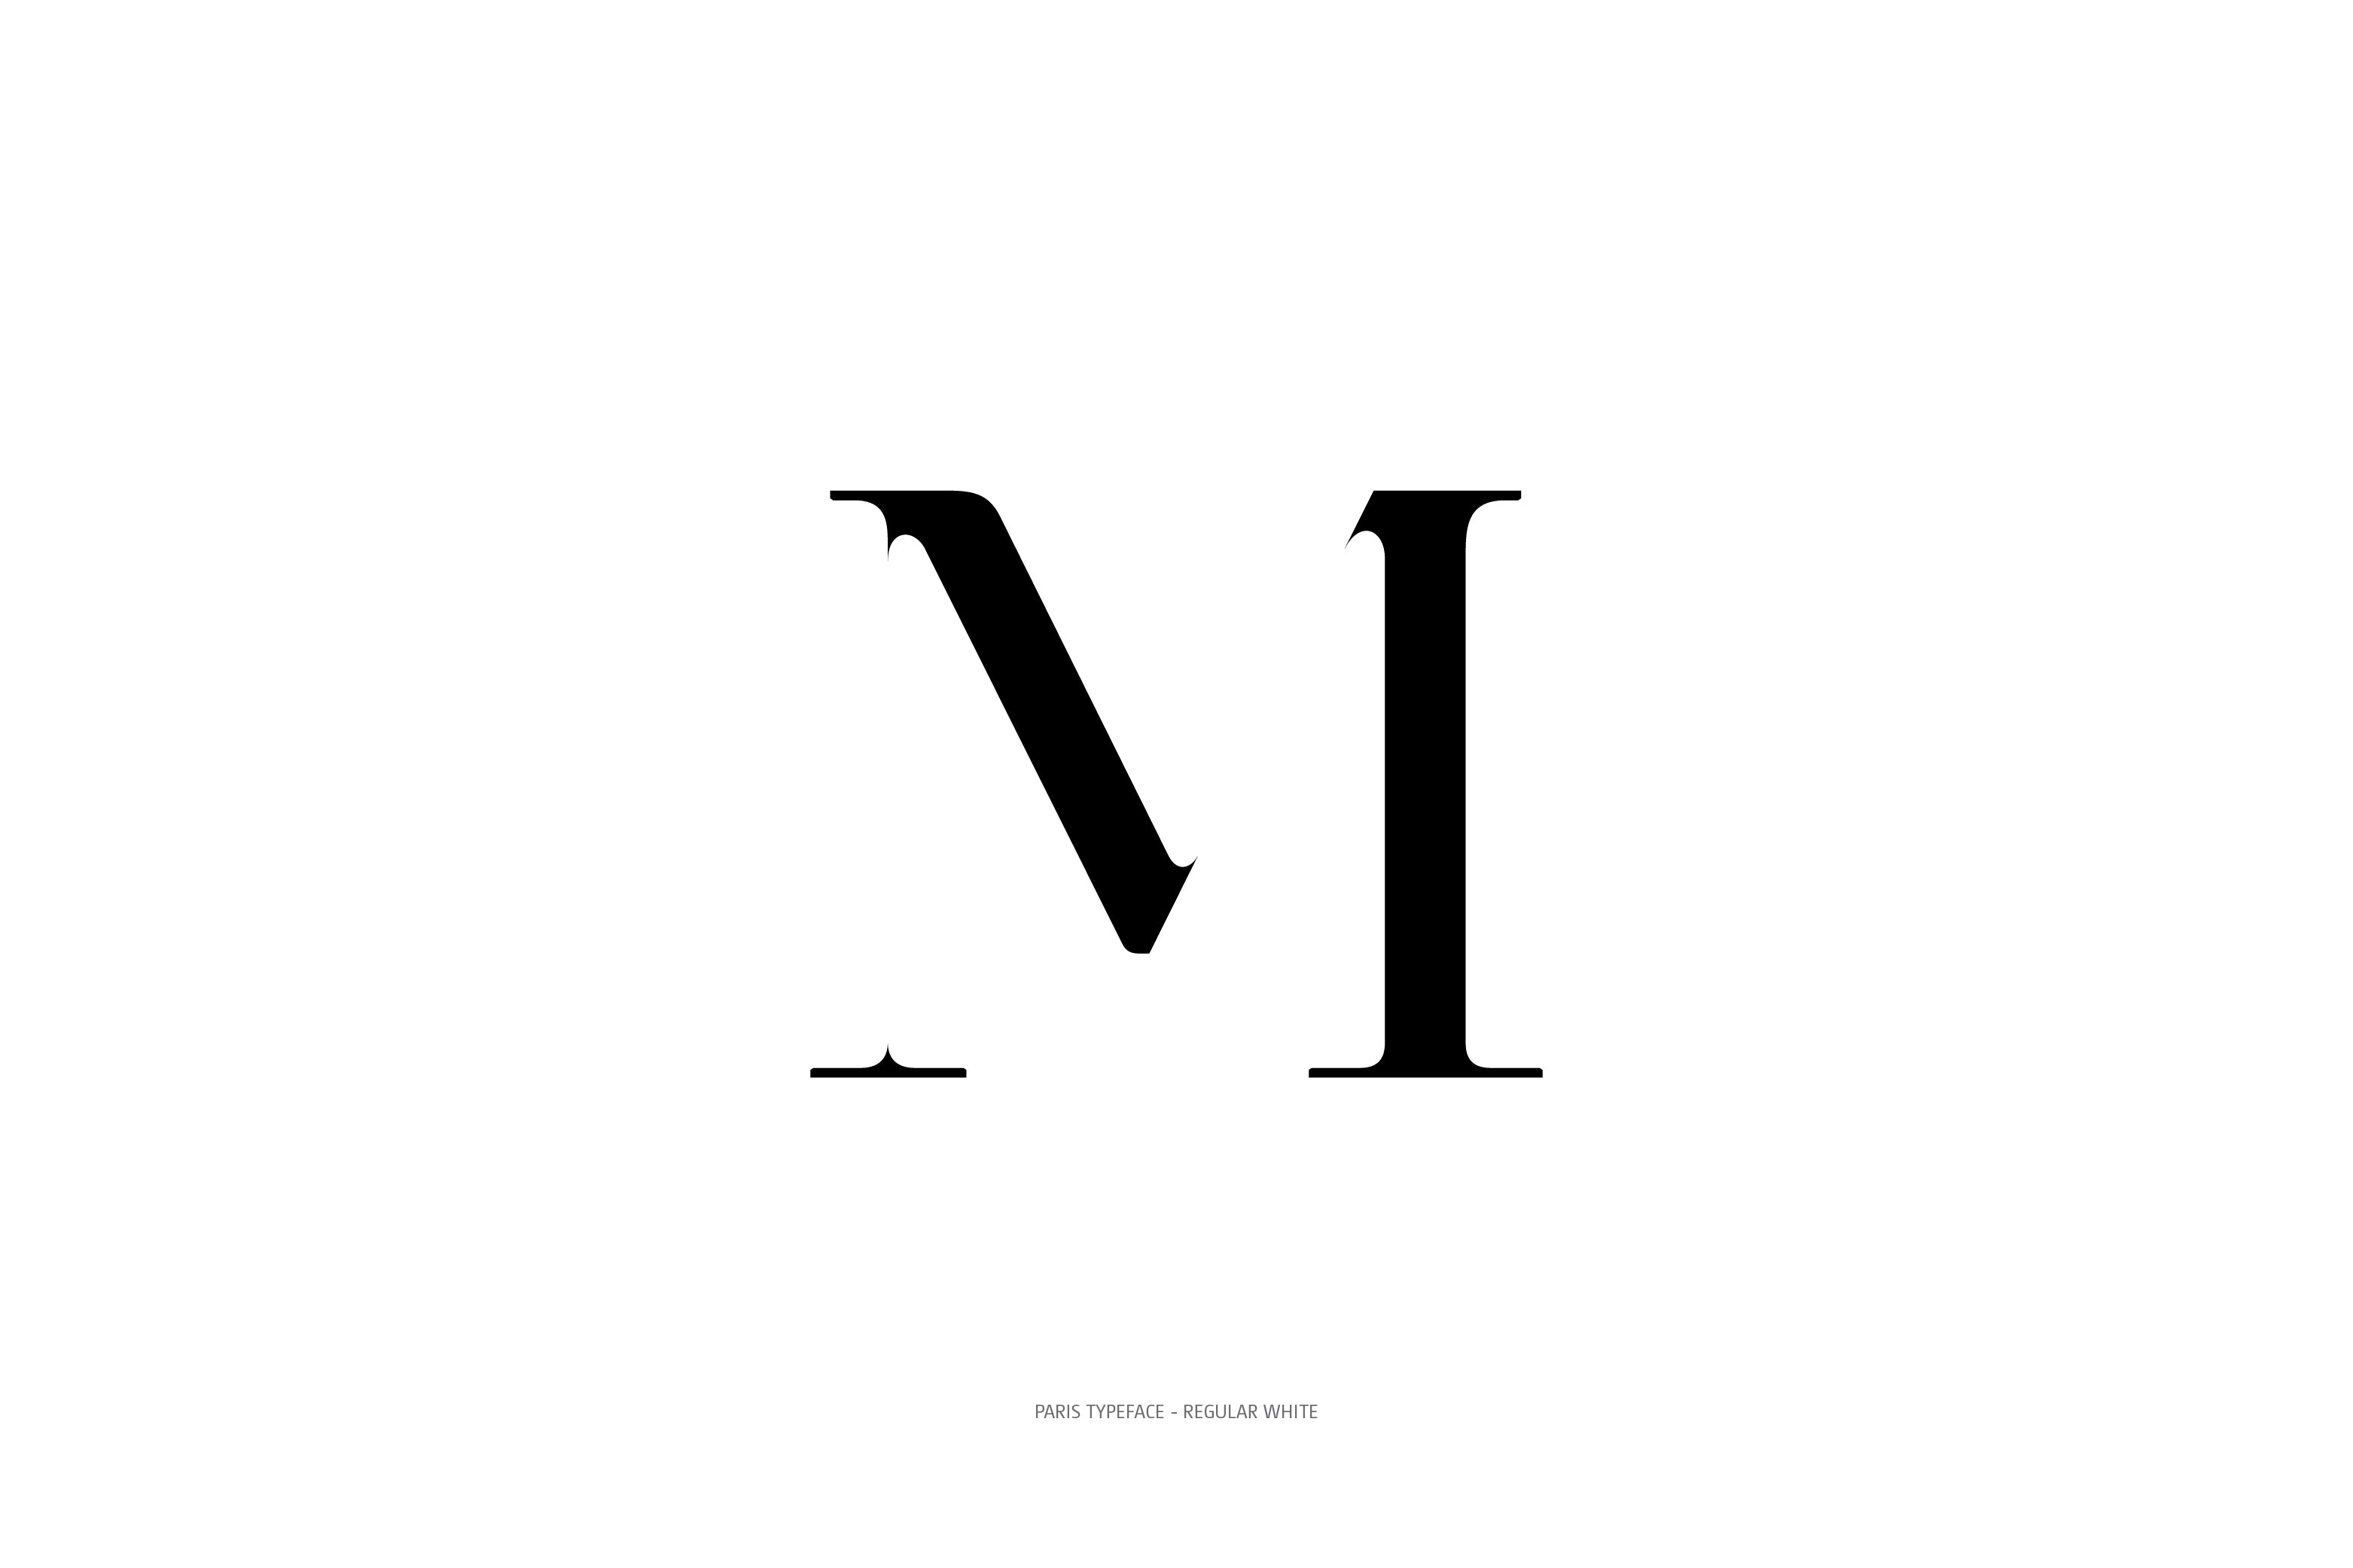 Paris Typeface Regular White M